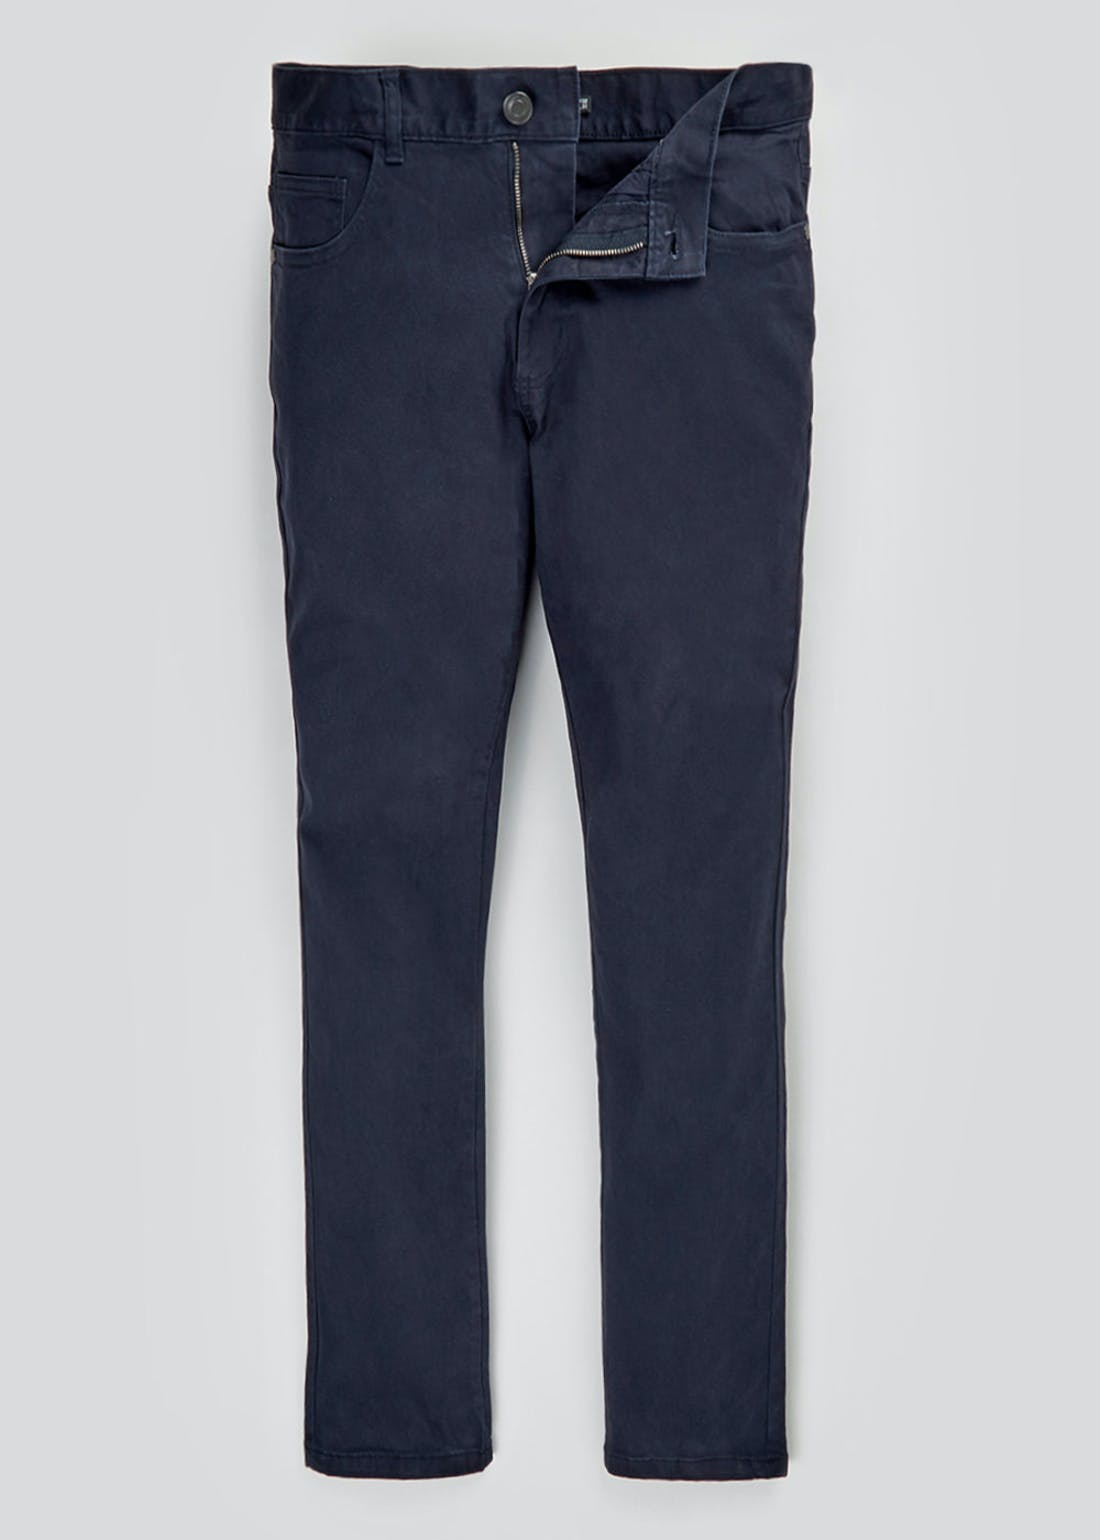 Easy Black Label Skinny Fit Trousers